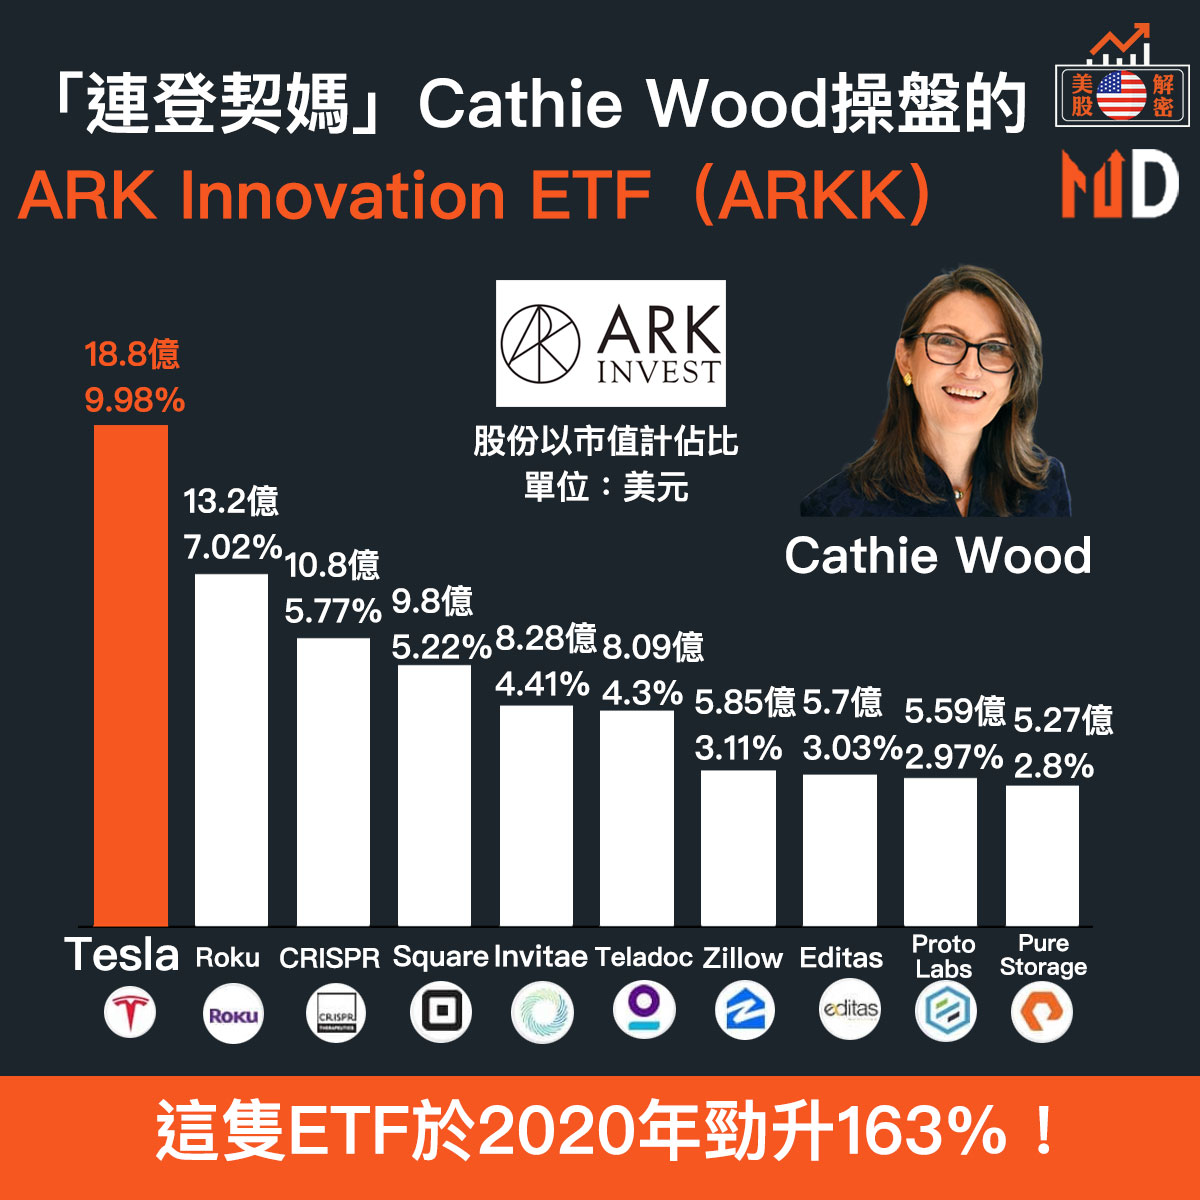 「連登契媽」Cathie Wood操盤的ARK Innovation ETF(ARKK)